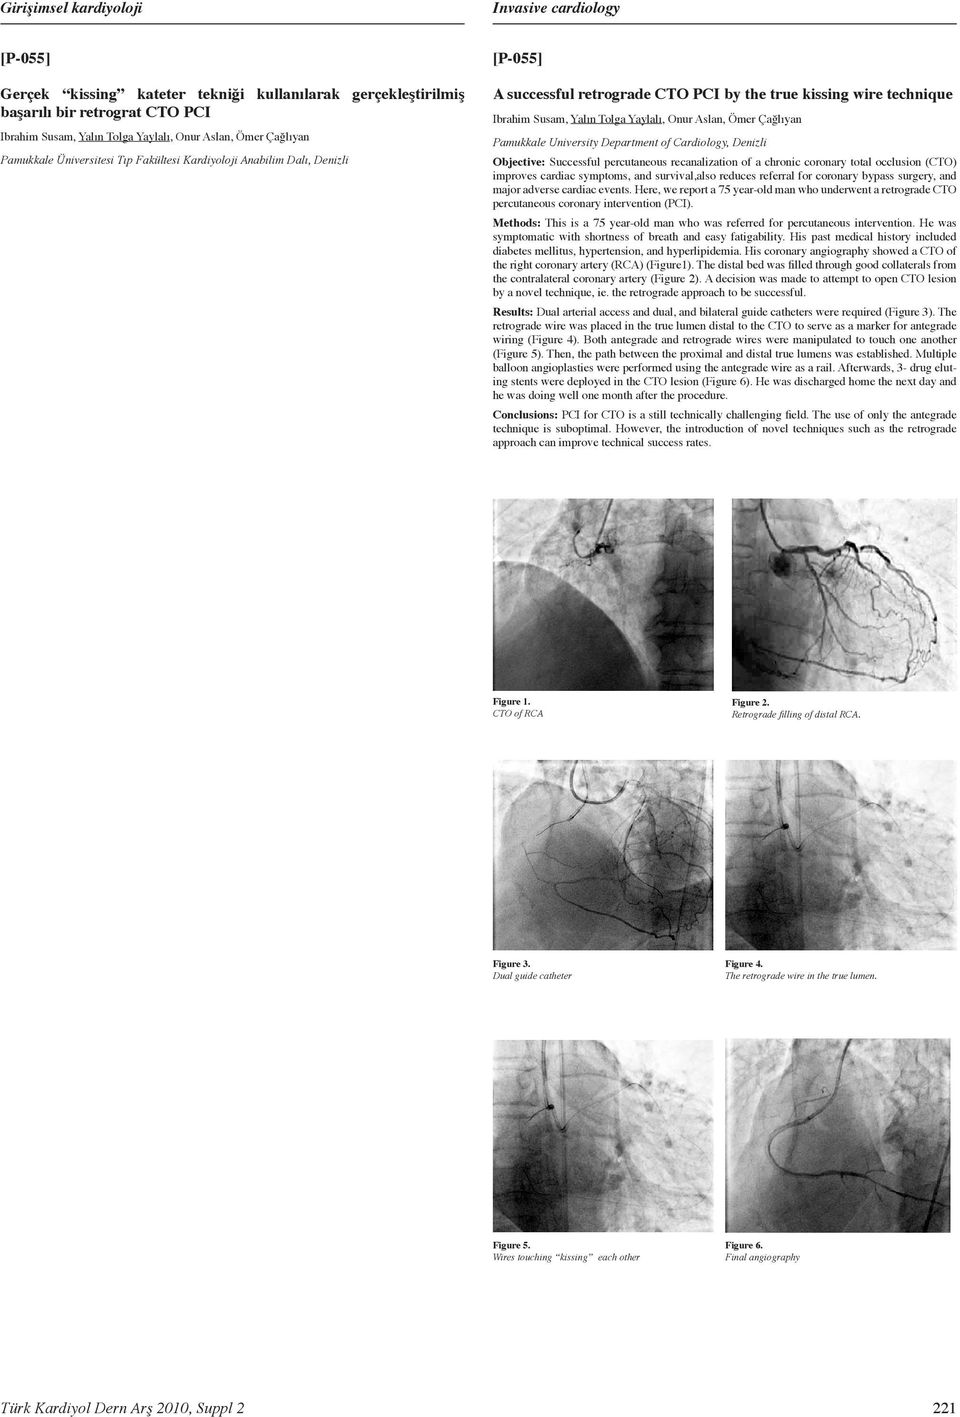 Department of Cardiology, Denizli Objective: Successful percutaneous recanalization of a chronic coronary total occlusion (CTO) improves cardiac symptoms, and survival,also reduces referral for